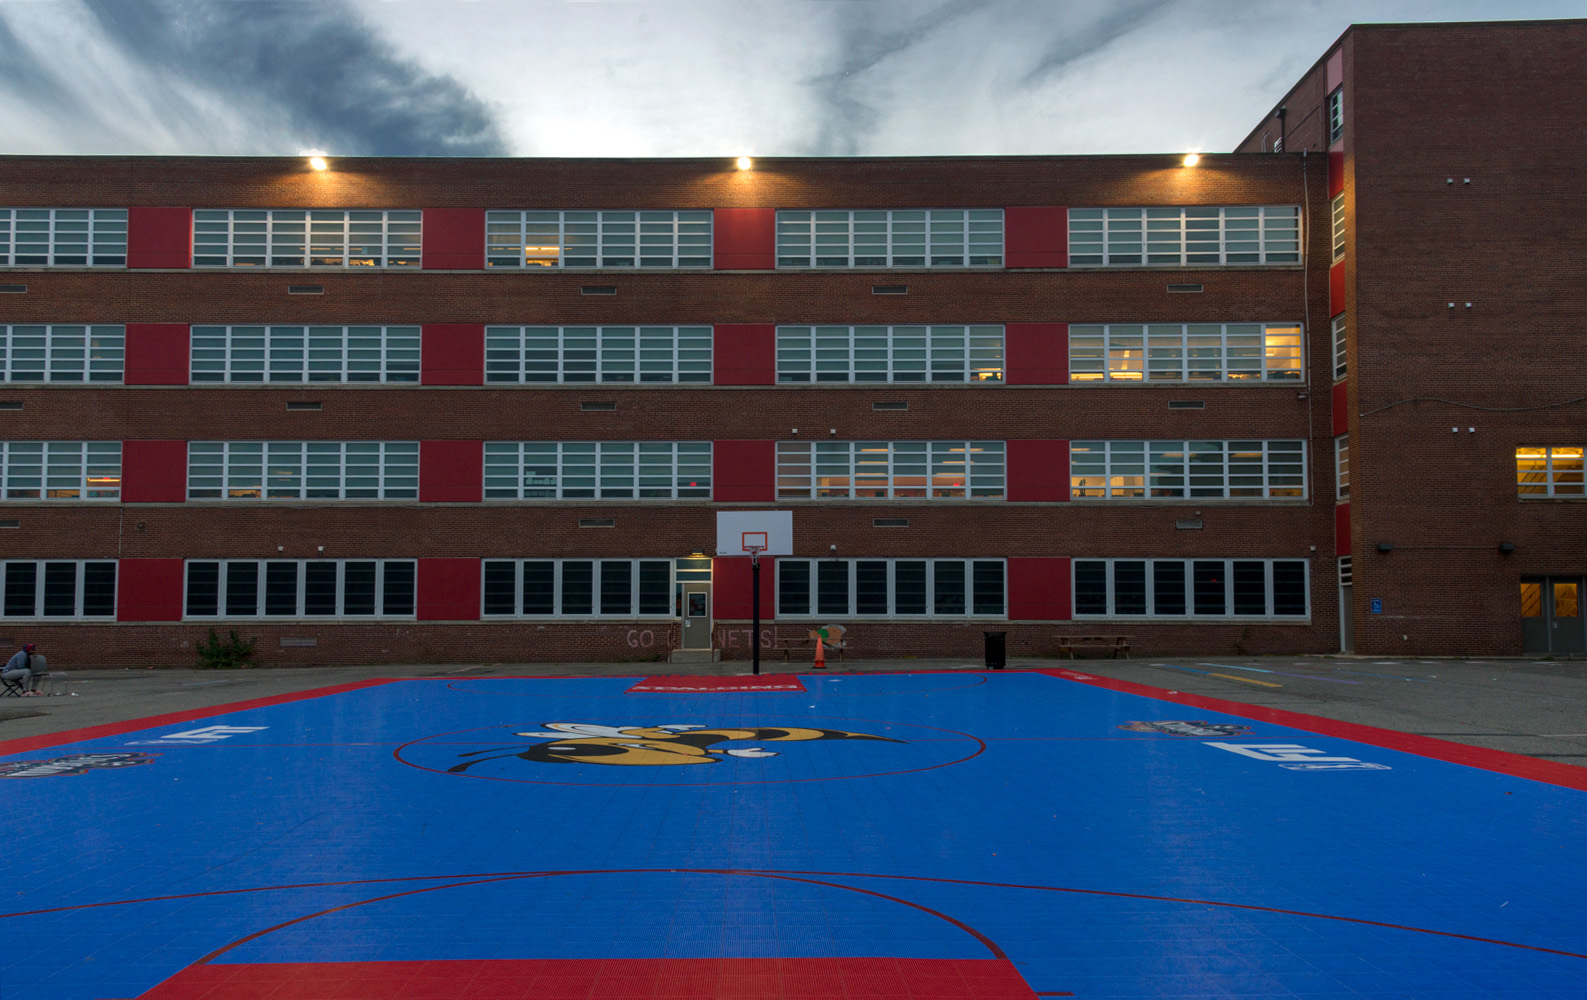 Primary school in Southeast, Washington, D.C.; 2018